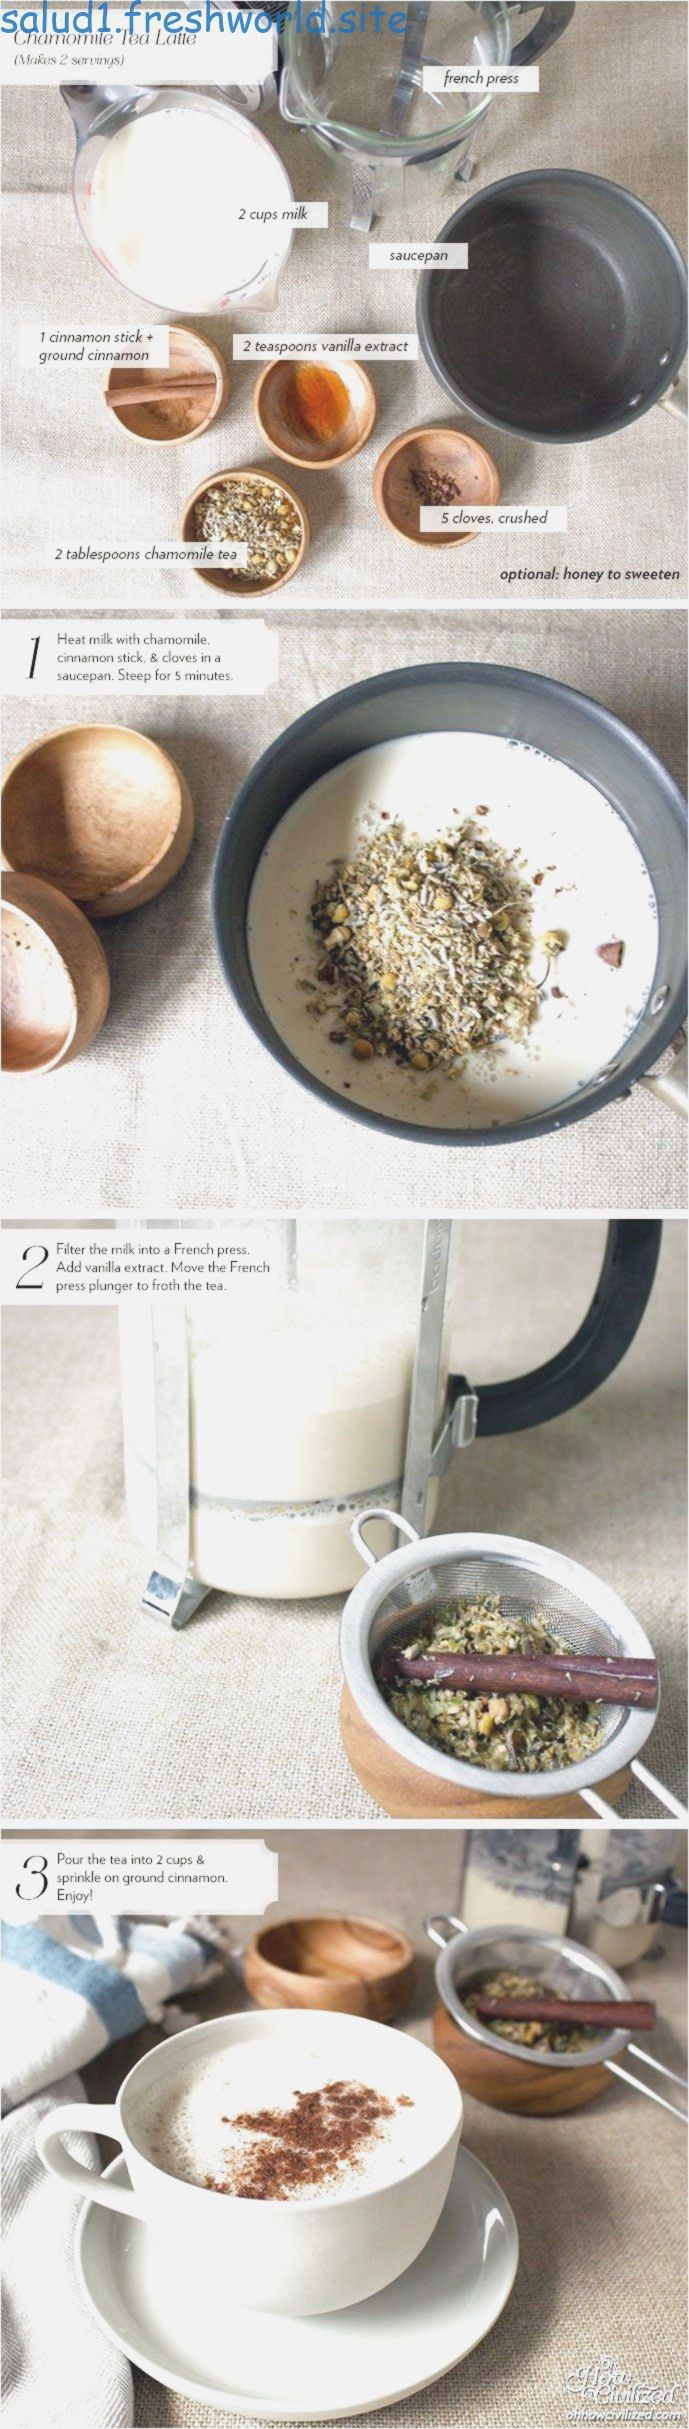 Chamomile Tea Latte - Oh How Civilized click to see more..., Chamomile Tea Latte - Oh How Civilized click to see more...,